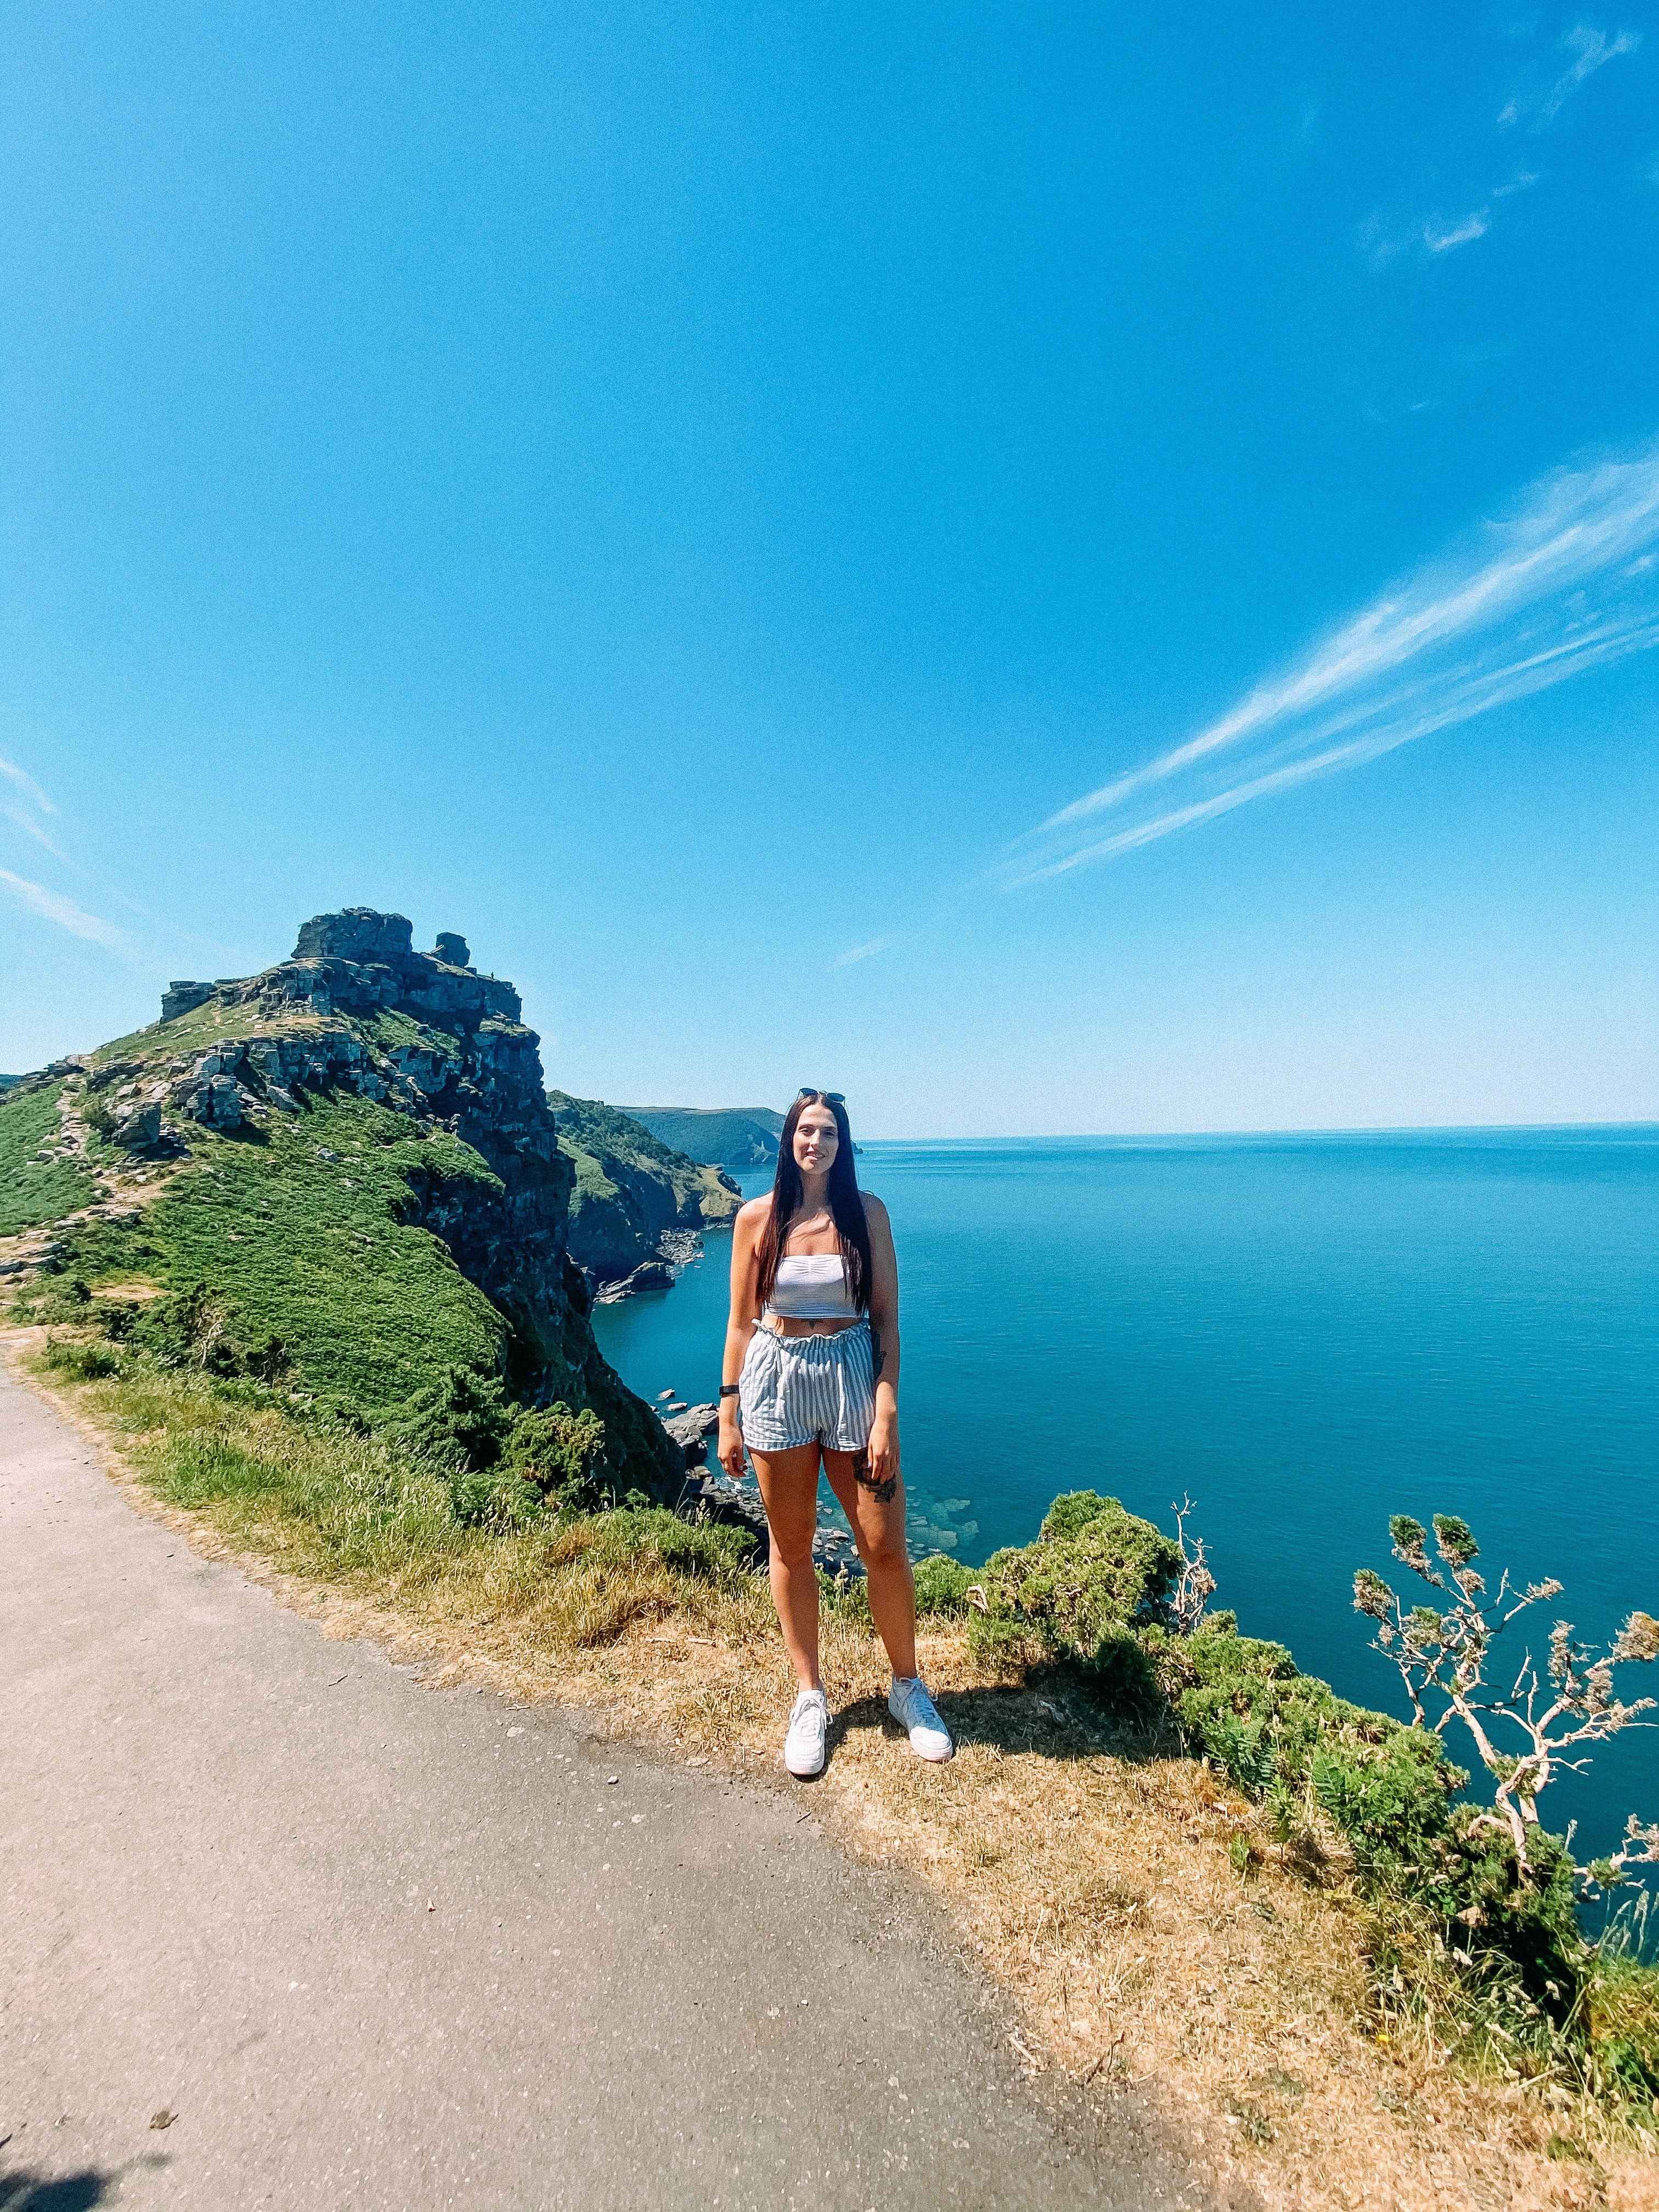 Valley of the rocks in the summer